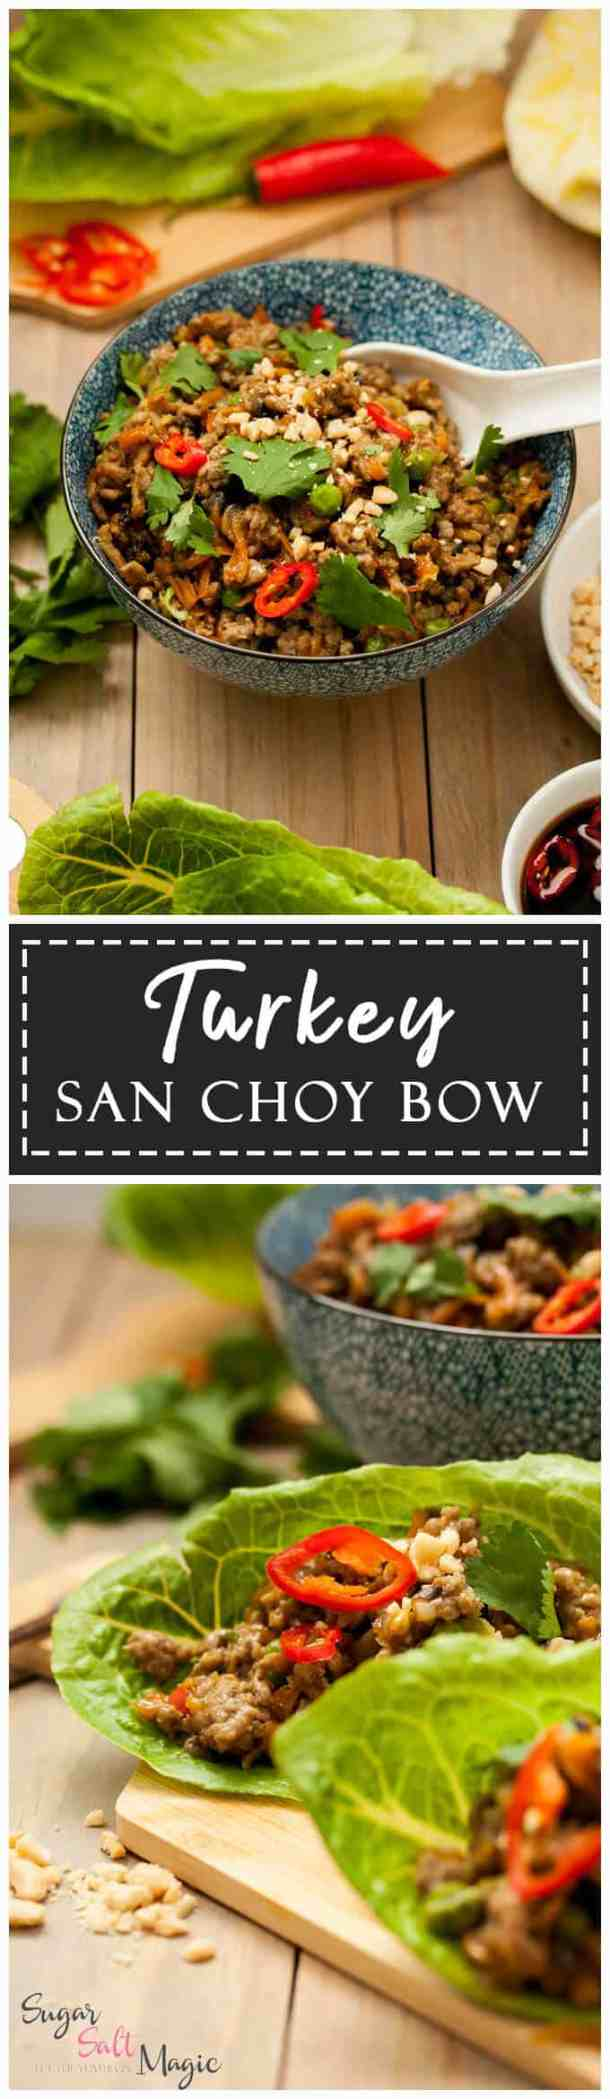 This recipe for my super quick and healthy Turkey San Choy Bow is the perfect weeknight meal, that everyone will love - even the kids!